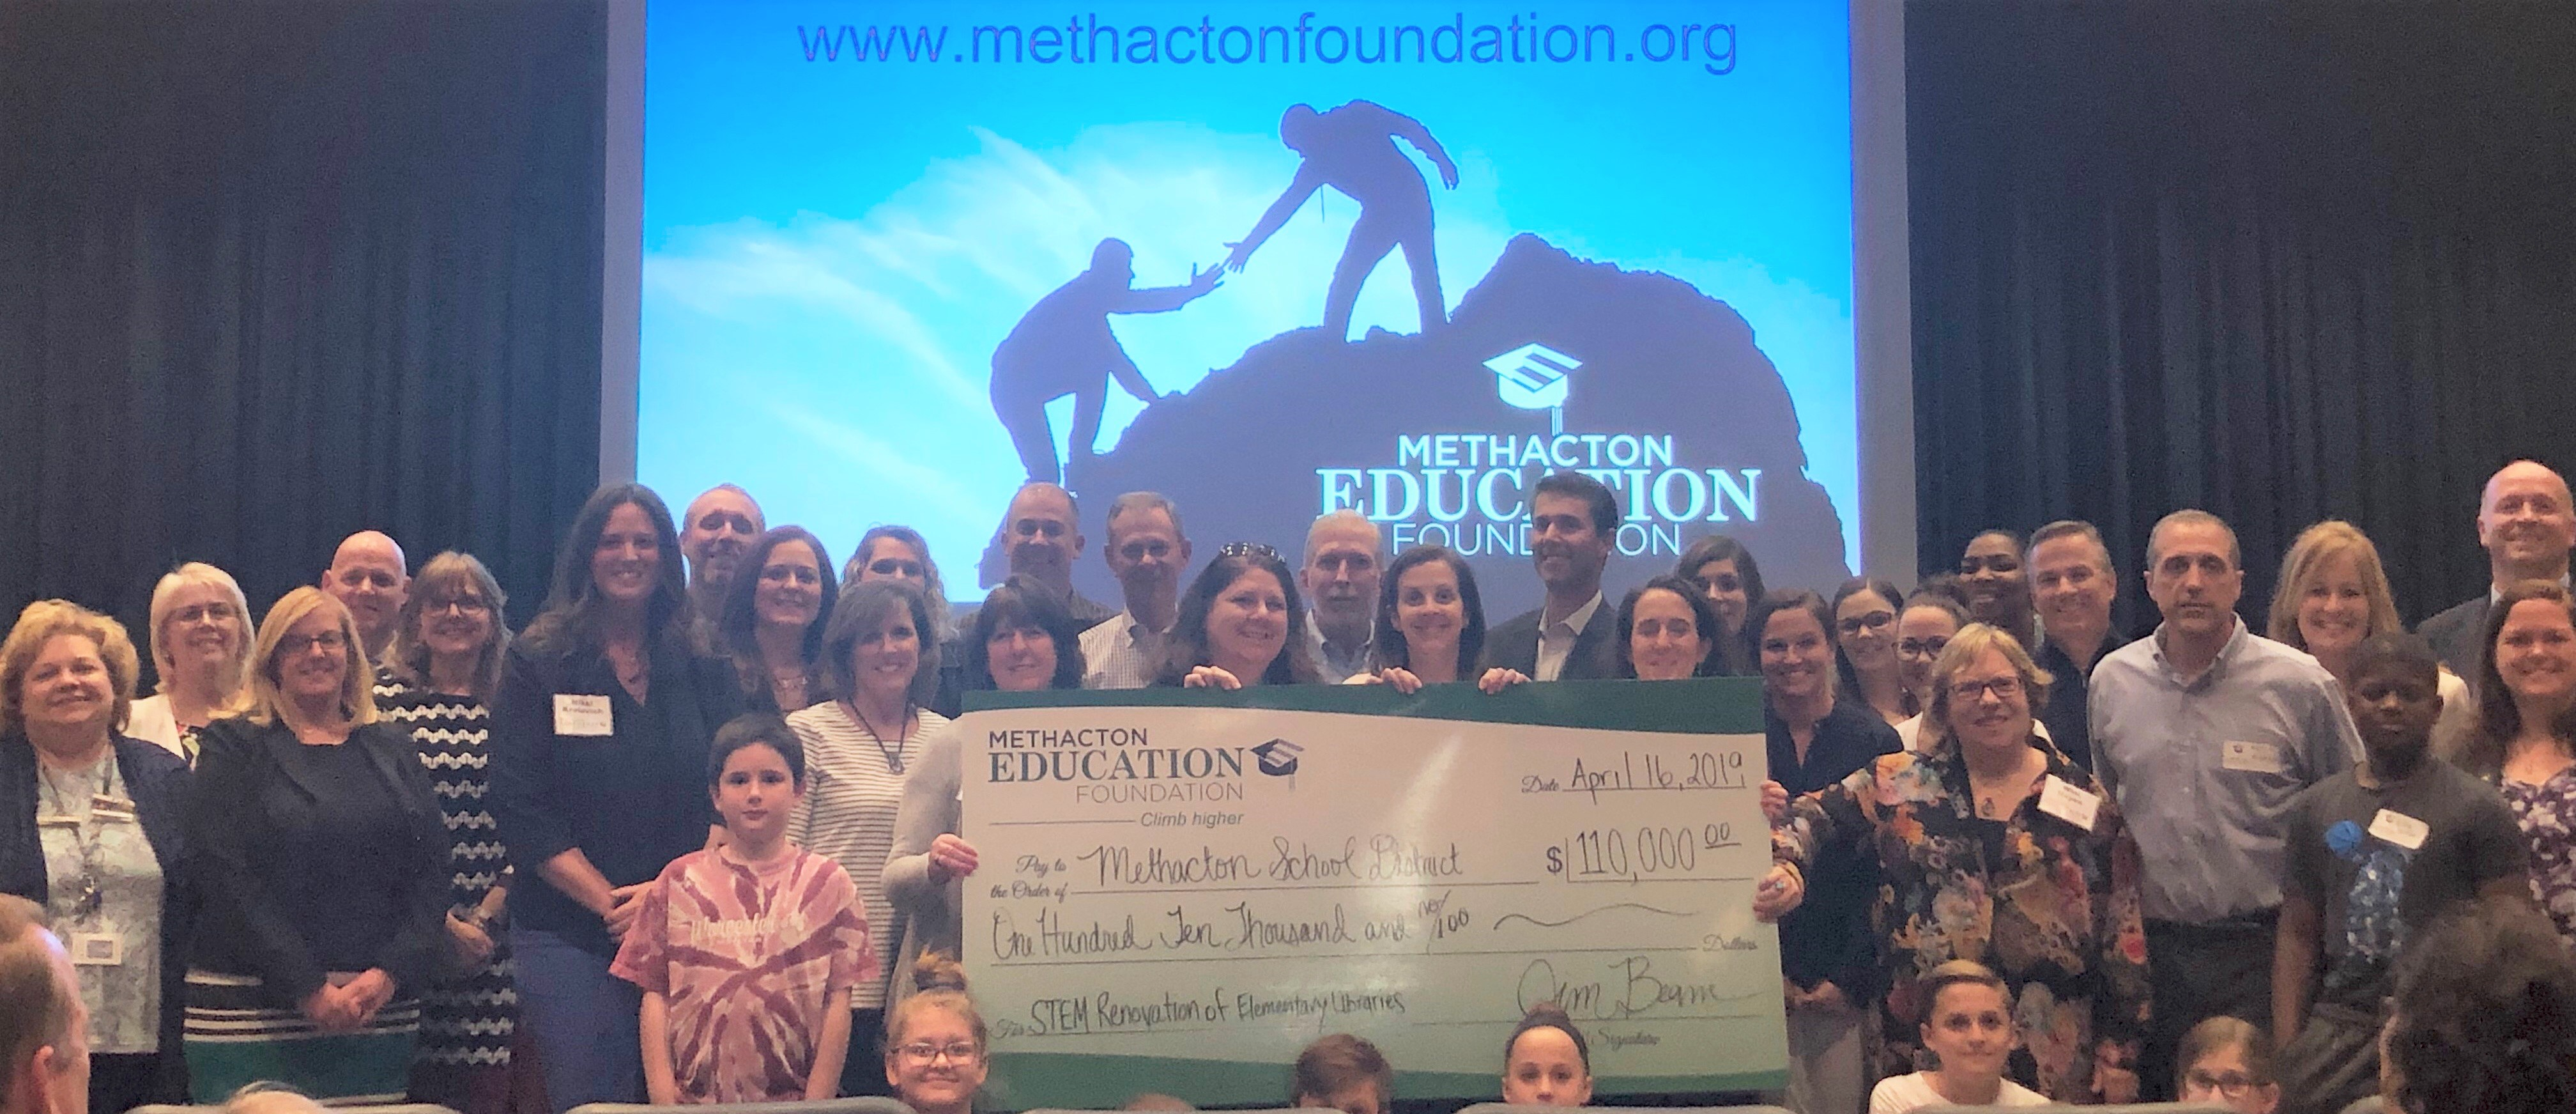 Foundation donates $110,000 for STEM in Methacton